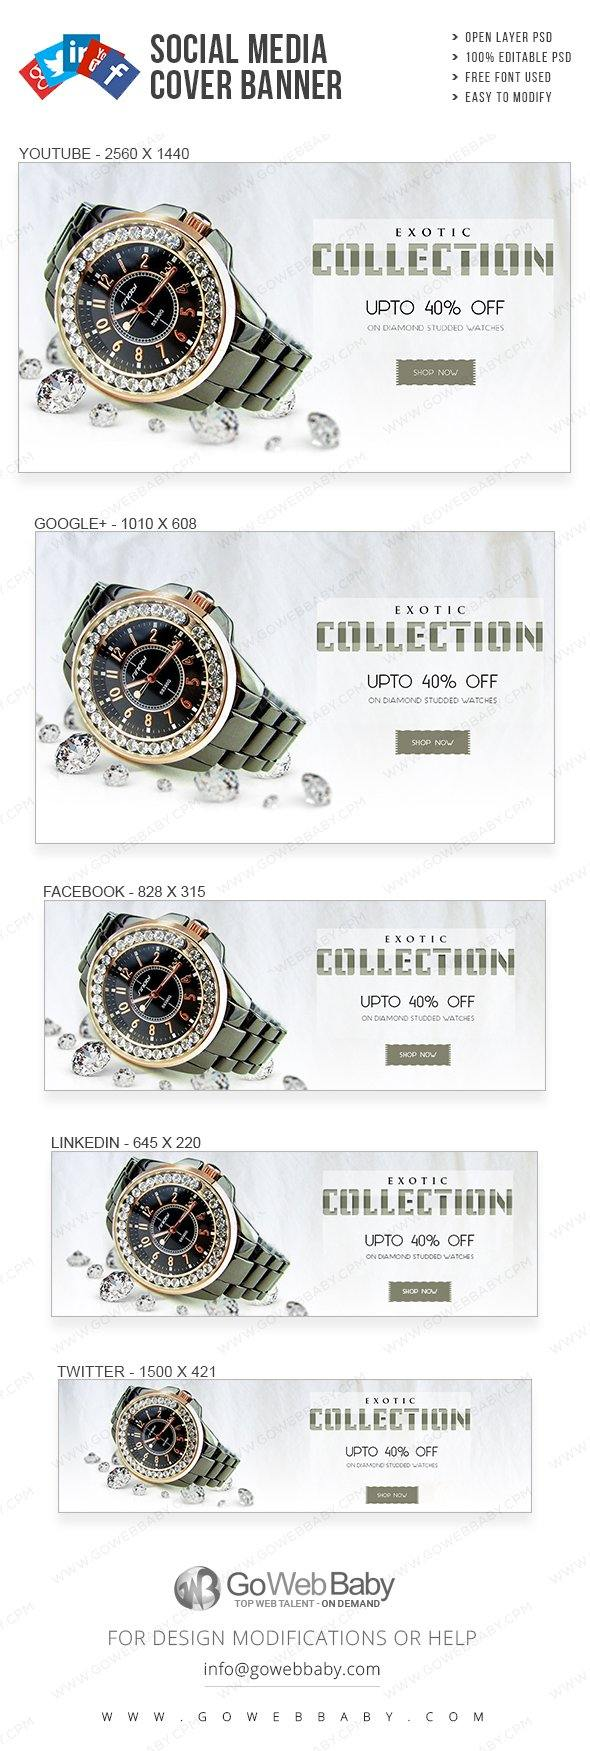 Social Media Cover Banner - Exotic Watch Collection For Website Marketing